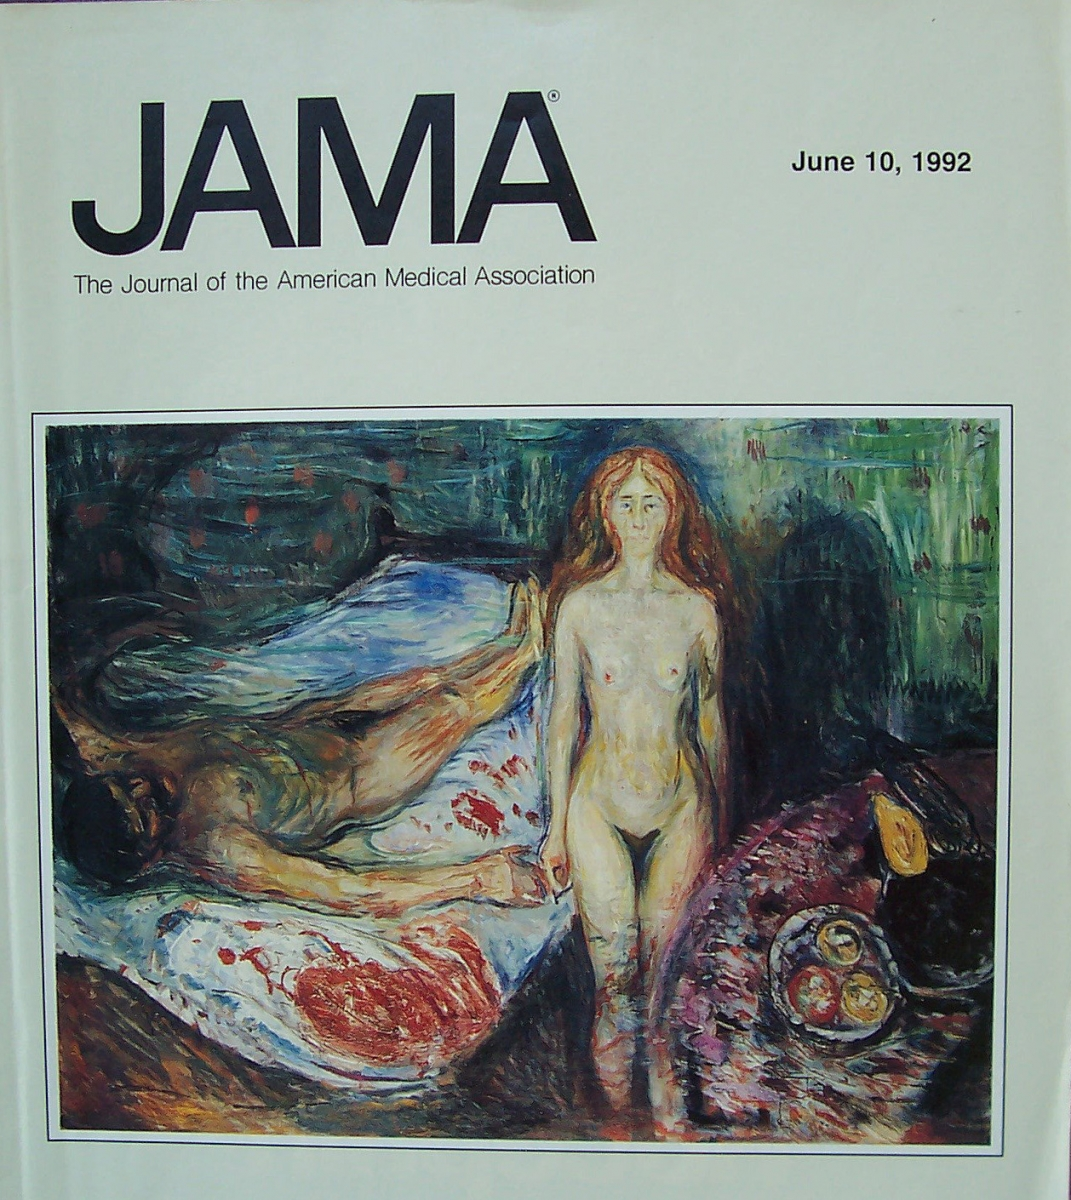 JAMA front cover